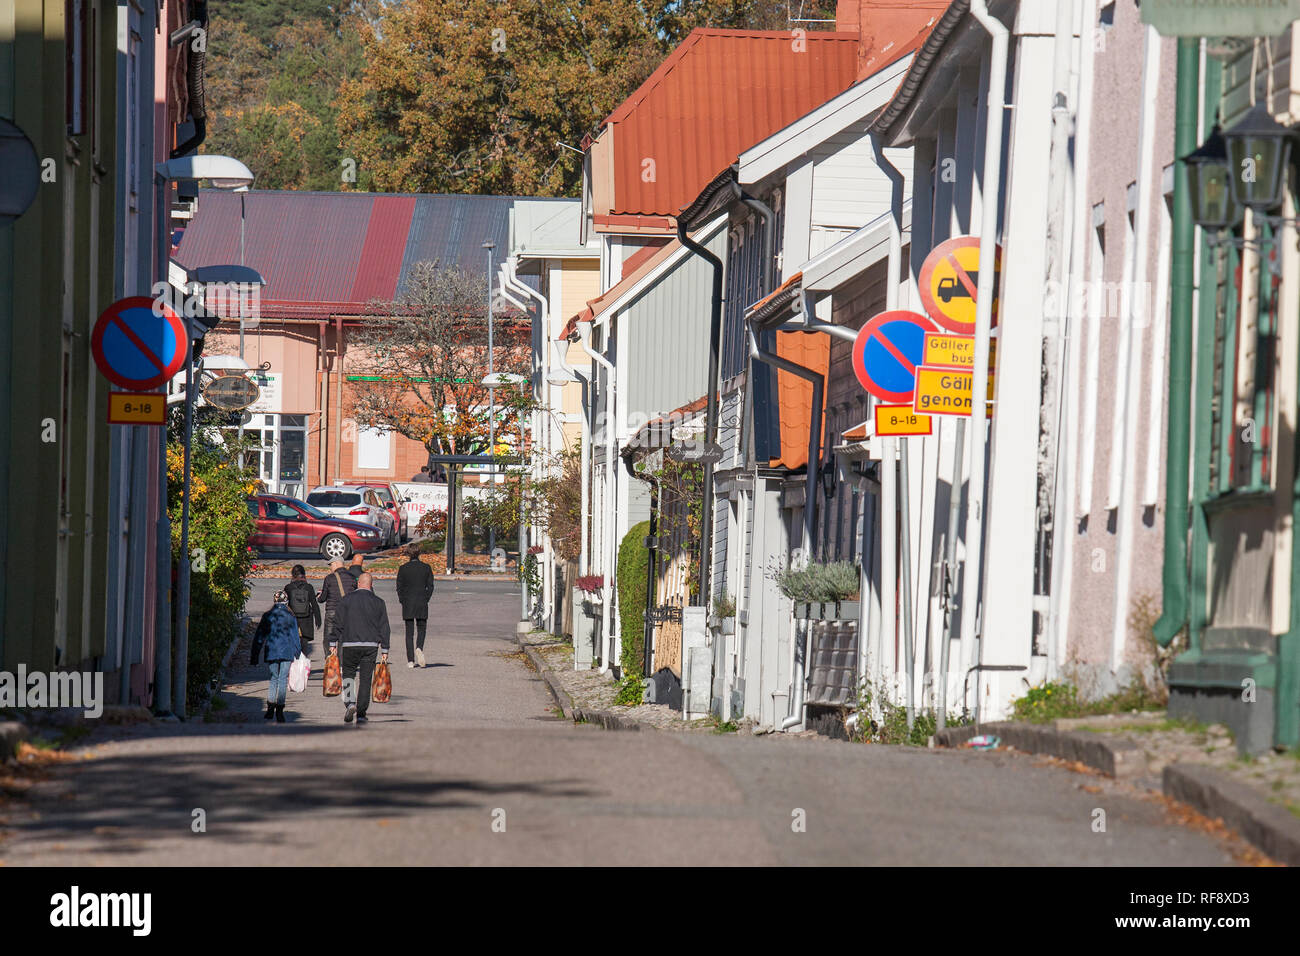 MARIEFRED Södermanland old wooden town south of Stockholm - Stock Image